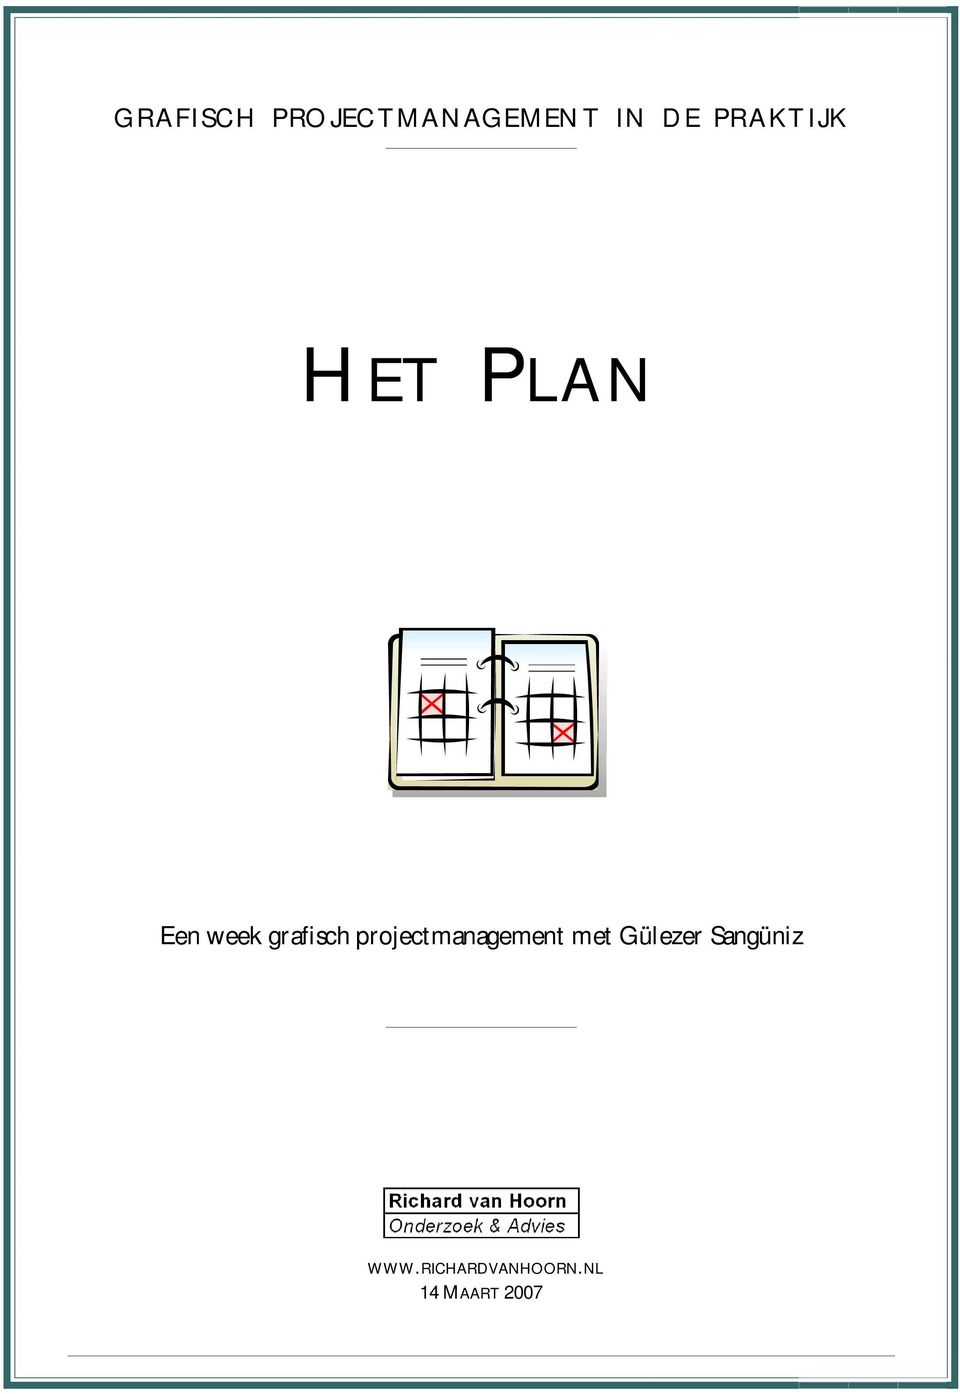 projectmanagement met